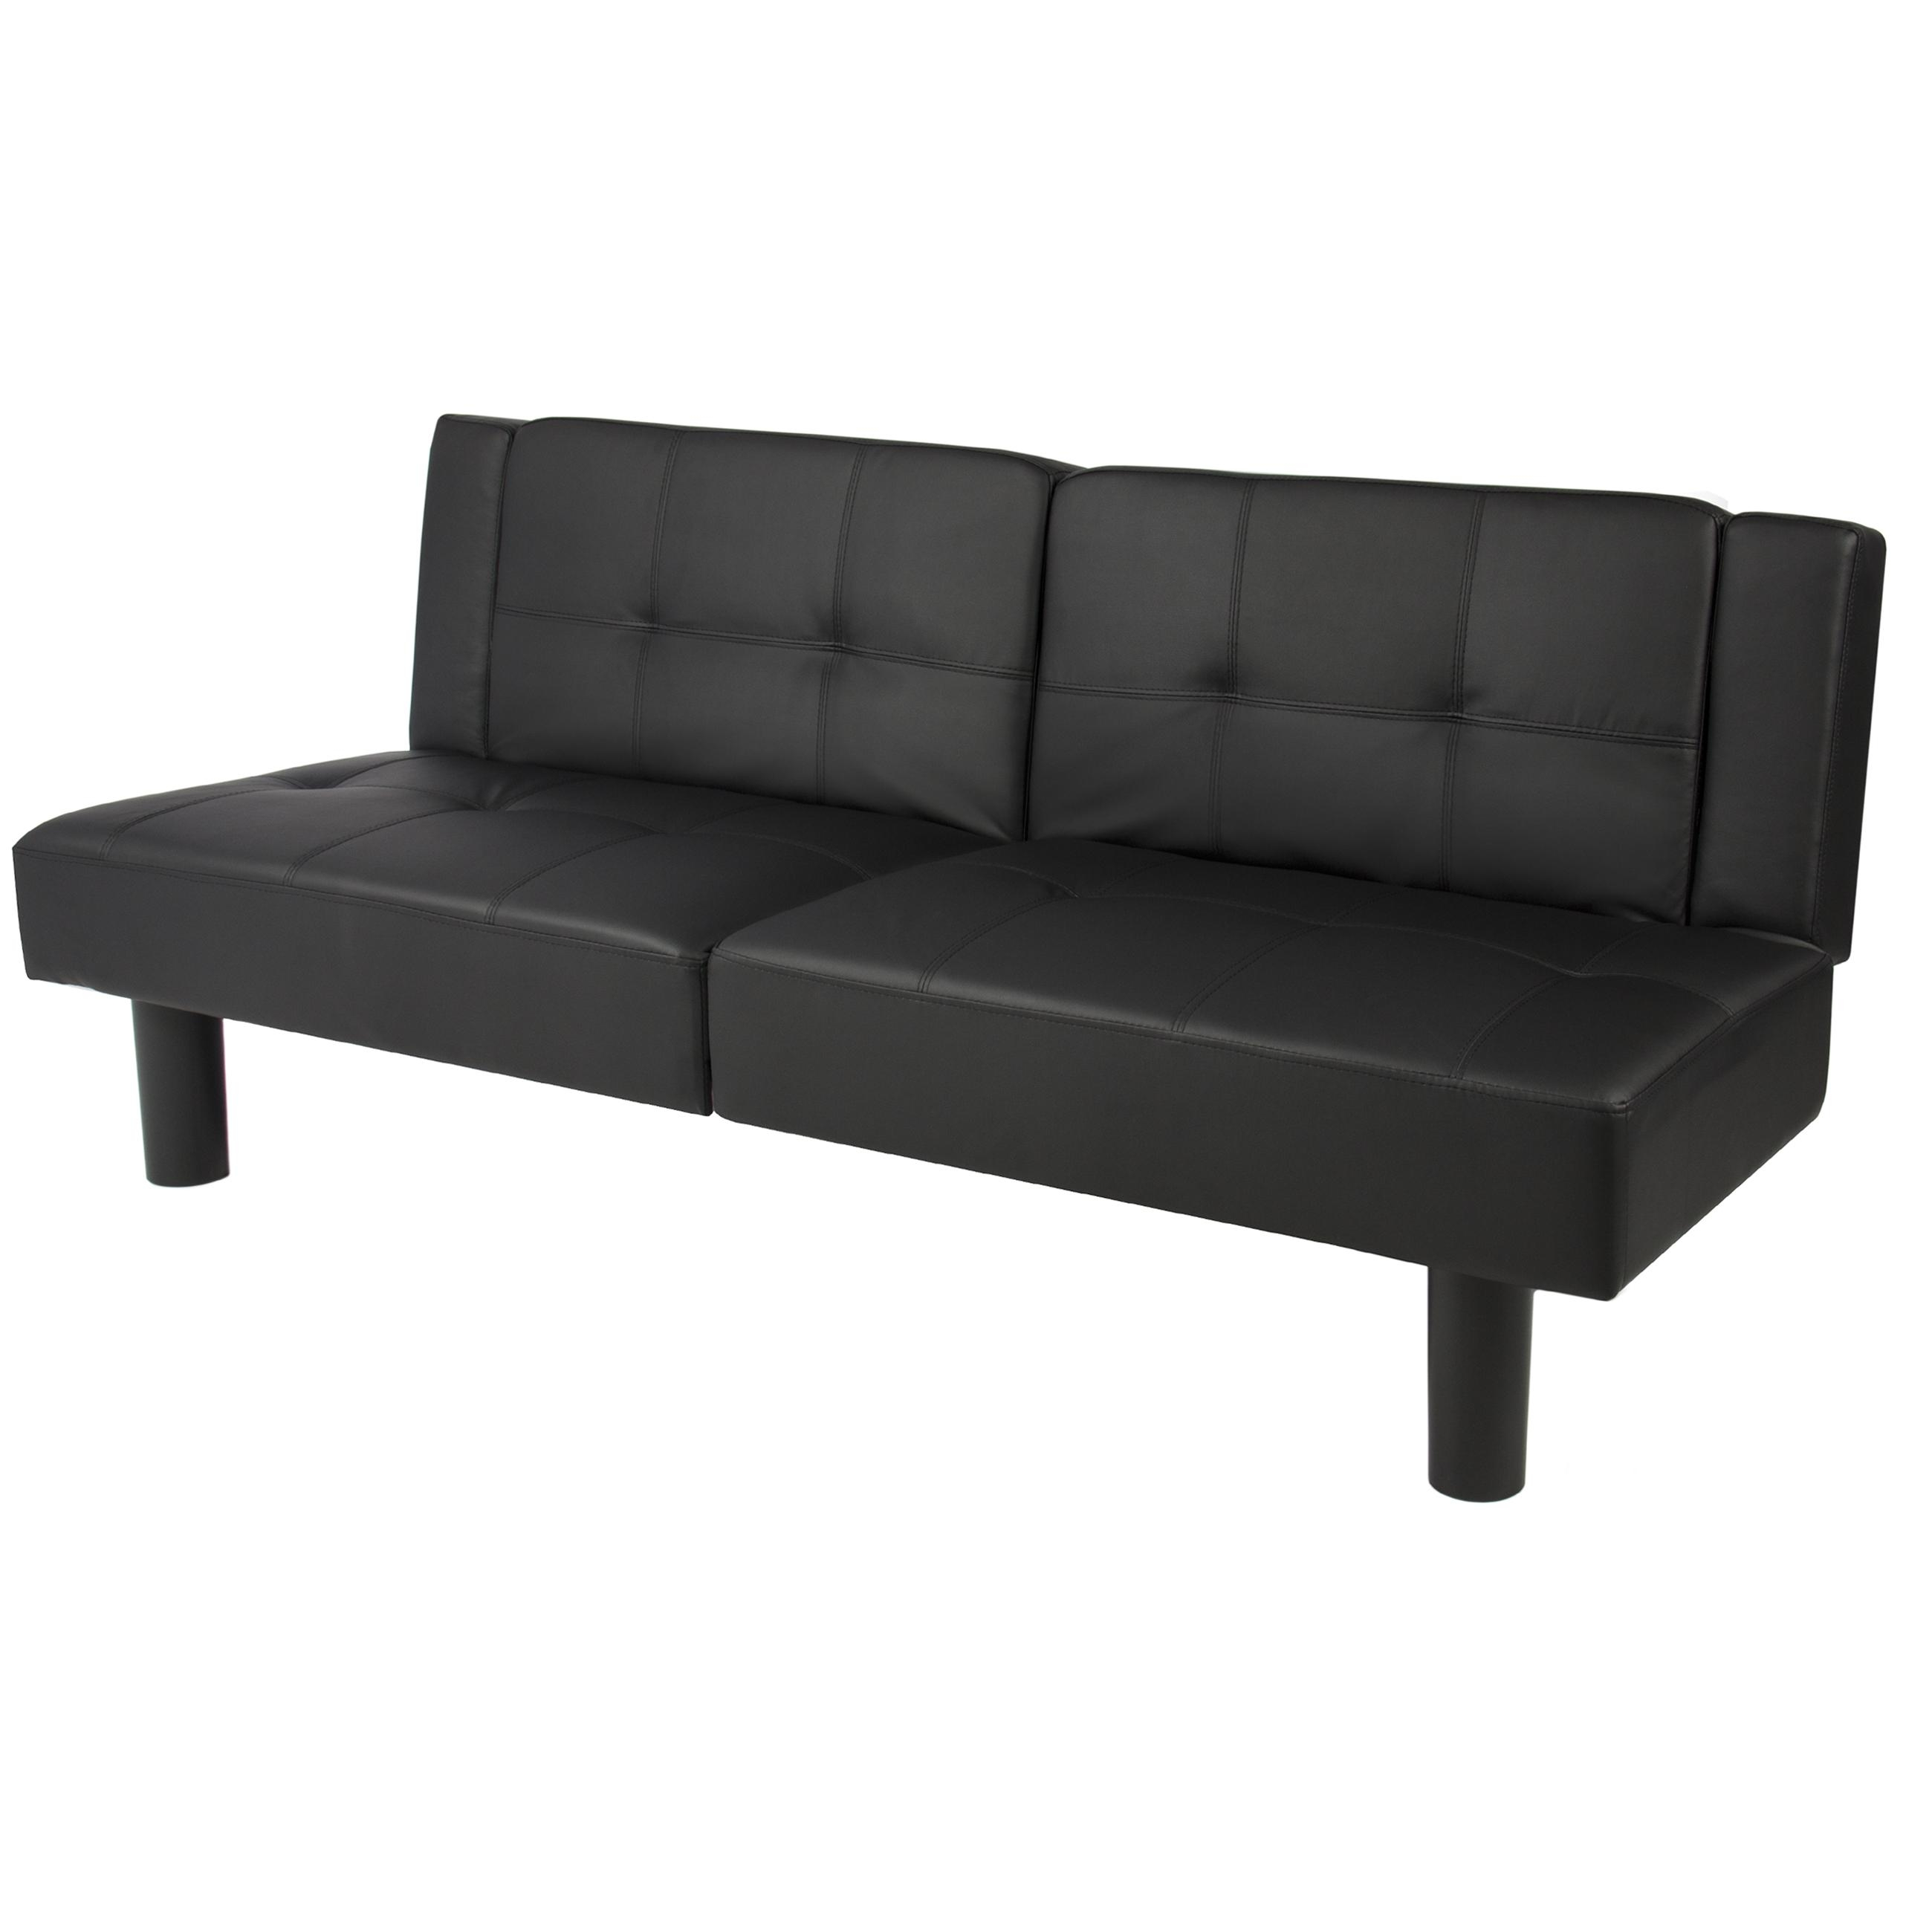 Leather Faux Fold Down Futon Sofa Bed Couch Sleeper Furniture Regarding Convertible Futon Sofa Beds (Image 15 of 20)